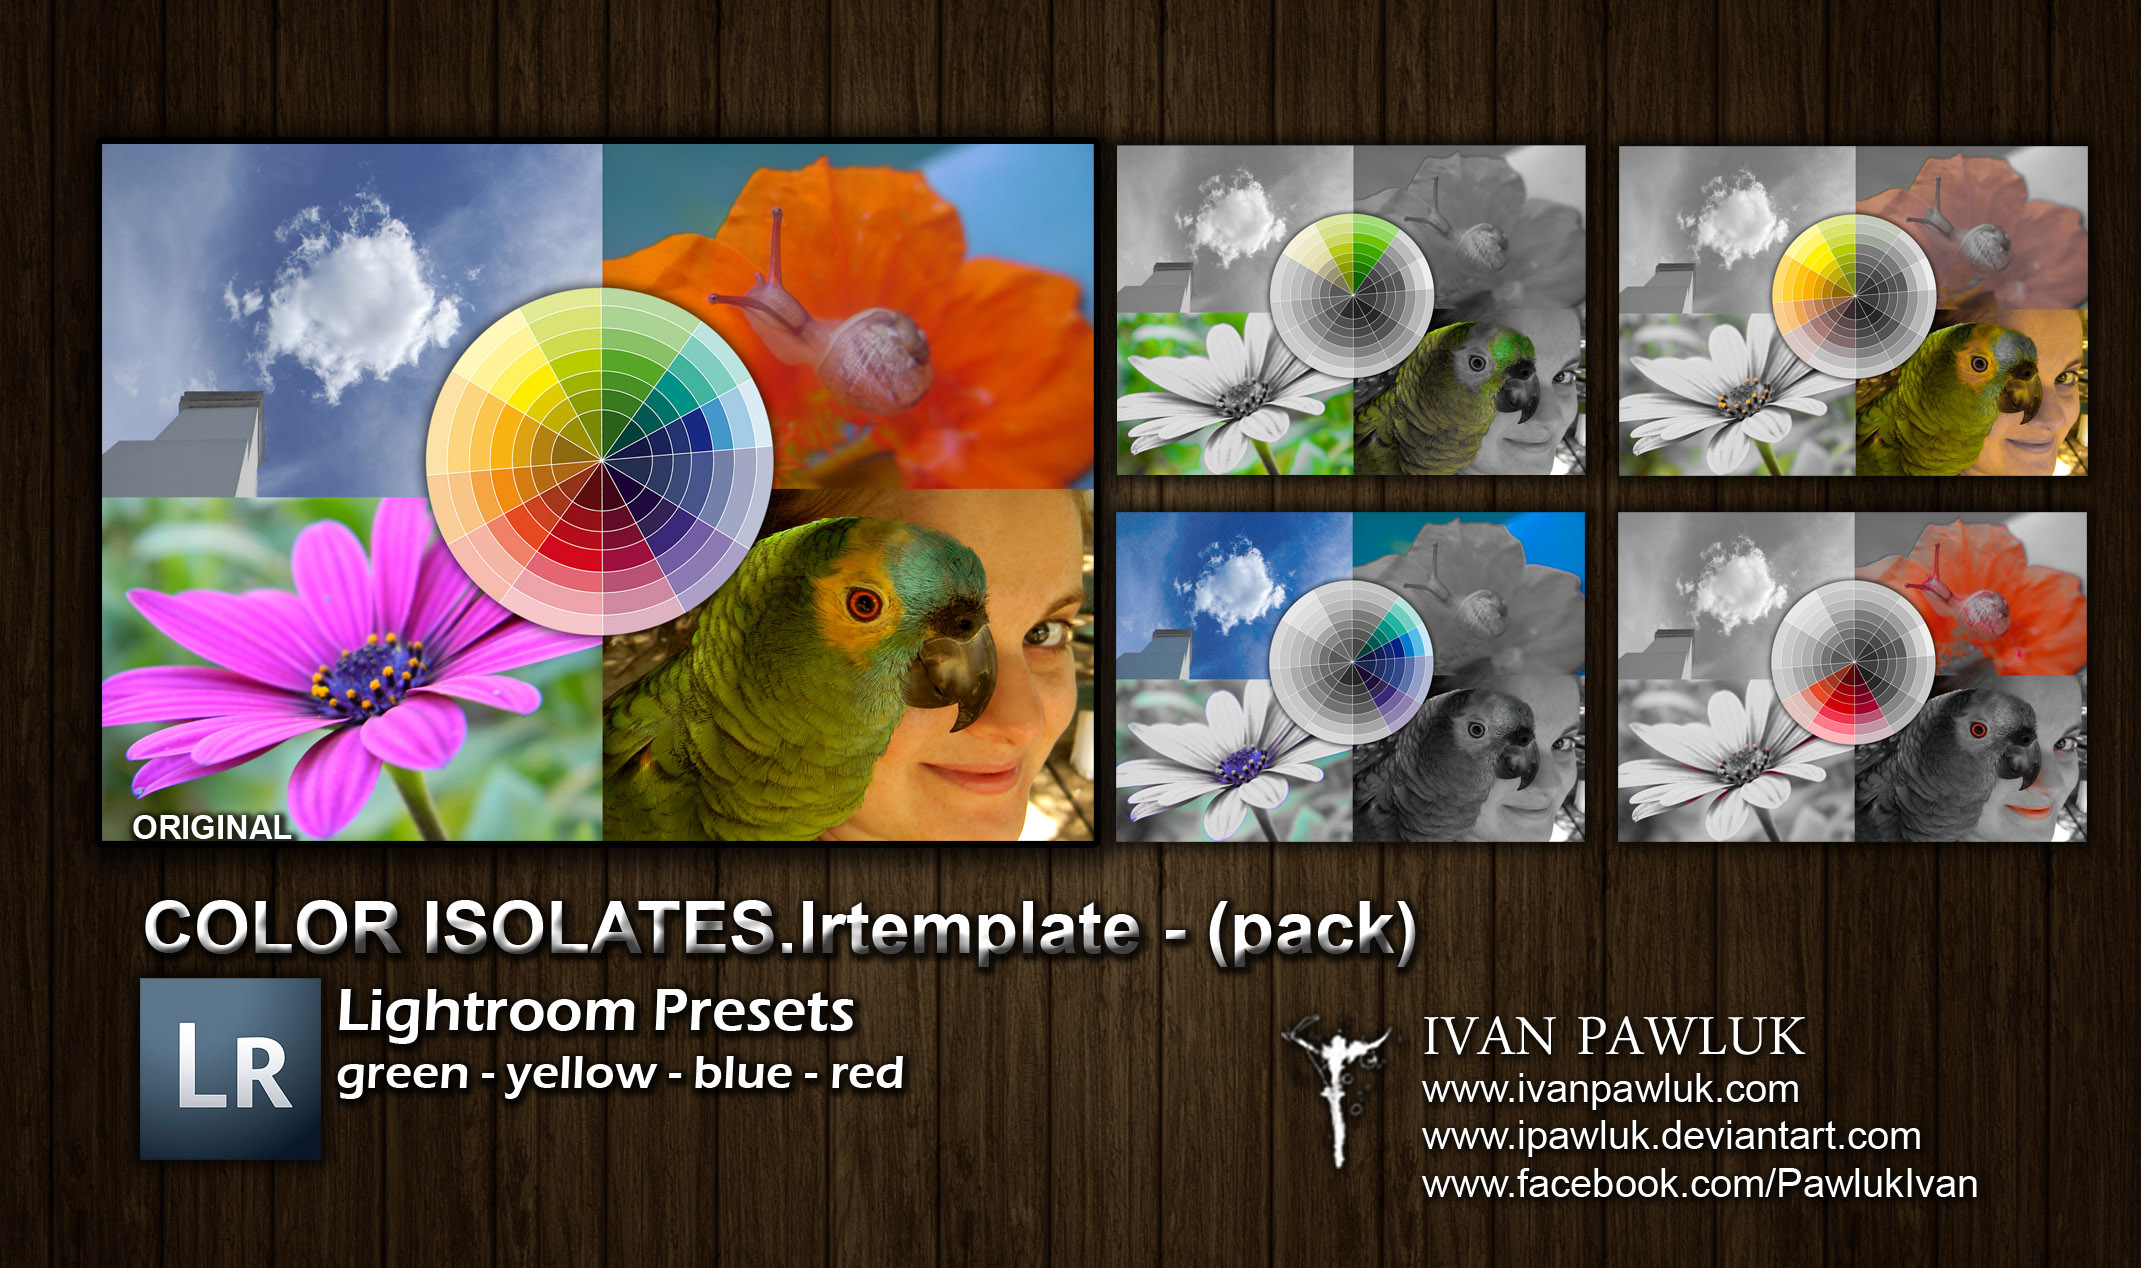 Presets Pawluk -color isolates